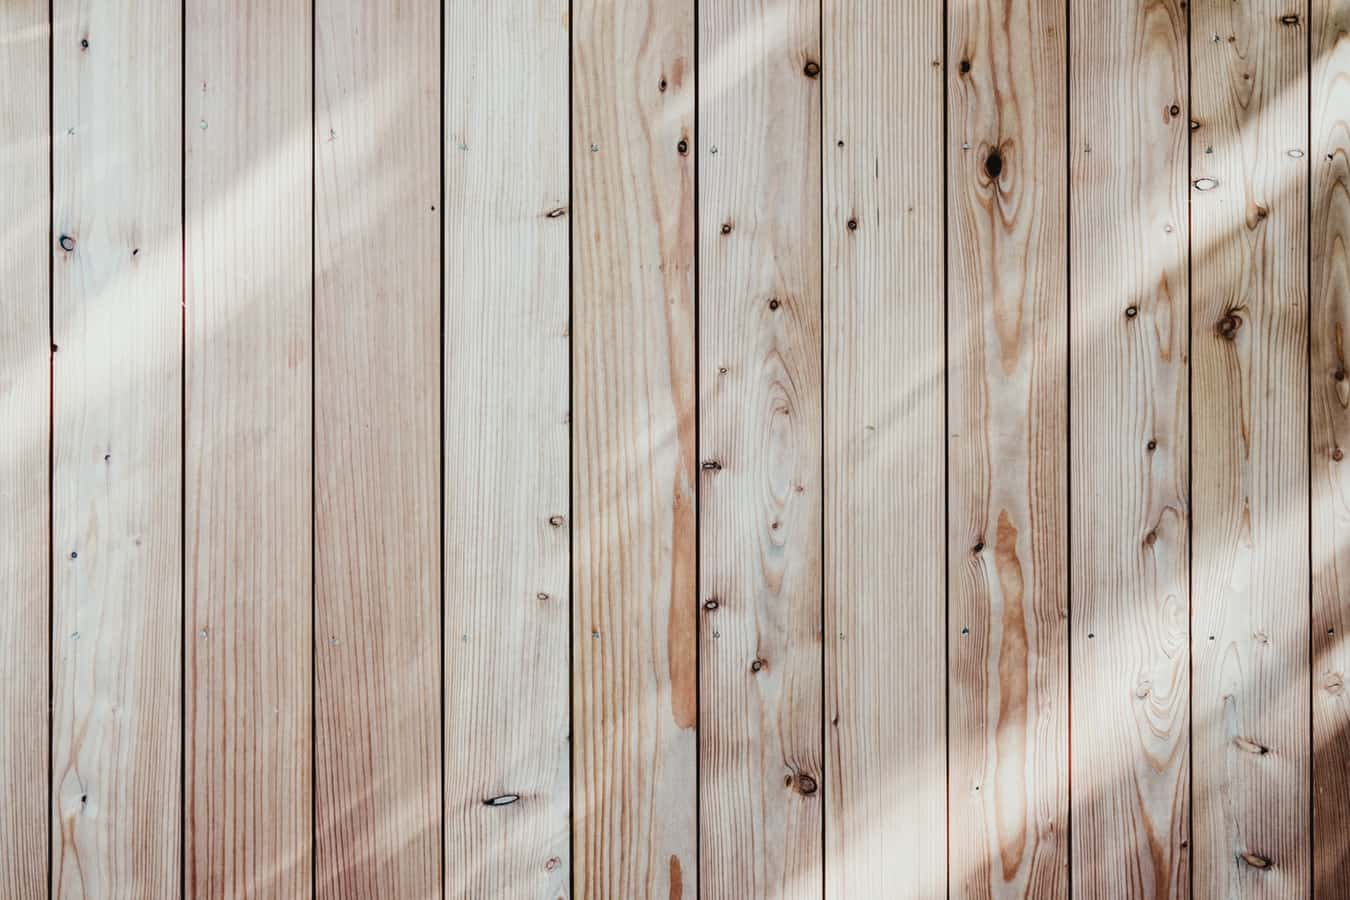 Light coloured planks of wood